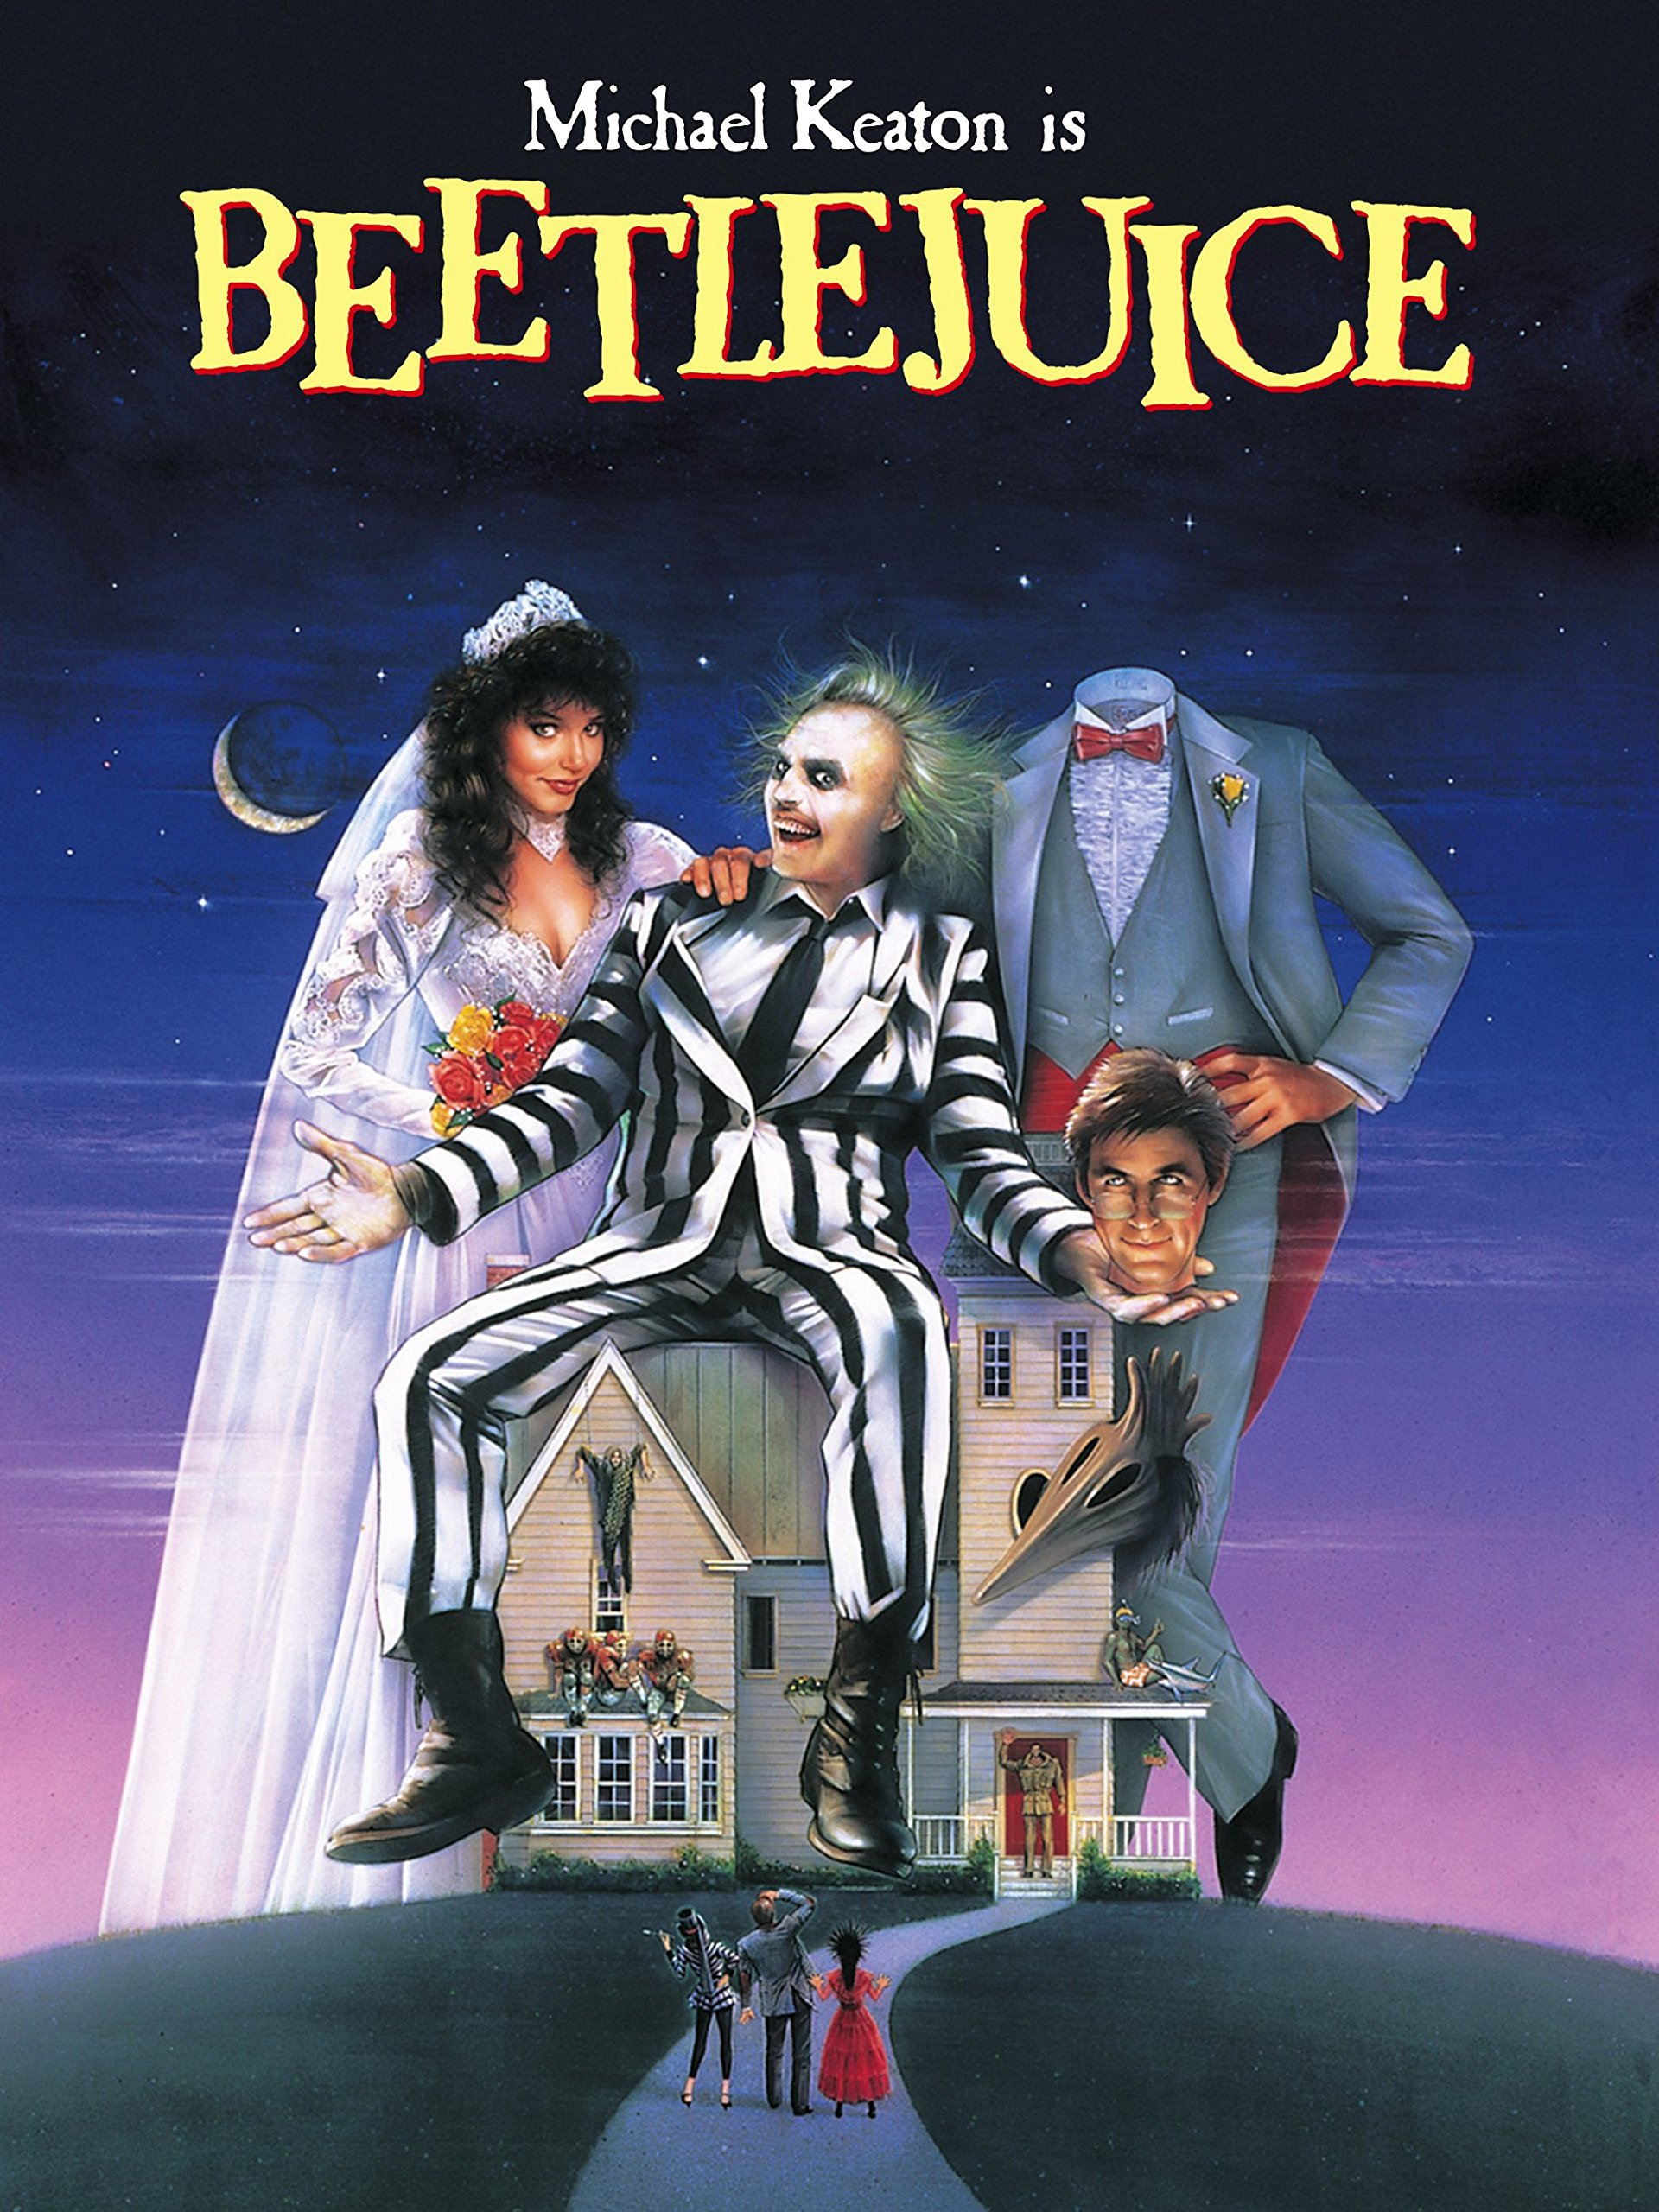 Beetlejuice - October 26-November 1, various times, Venue CinemasVenue Classics presents the 30th anniversary of Tim Burton's Beetlejuice starring Michael Keaton, Winona Ryder, Alec Baldwin, and Geena Davis. Rated PG Parental Guidance Suggested. Some material may not be suitable for children.